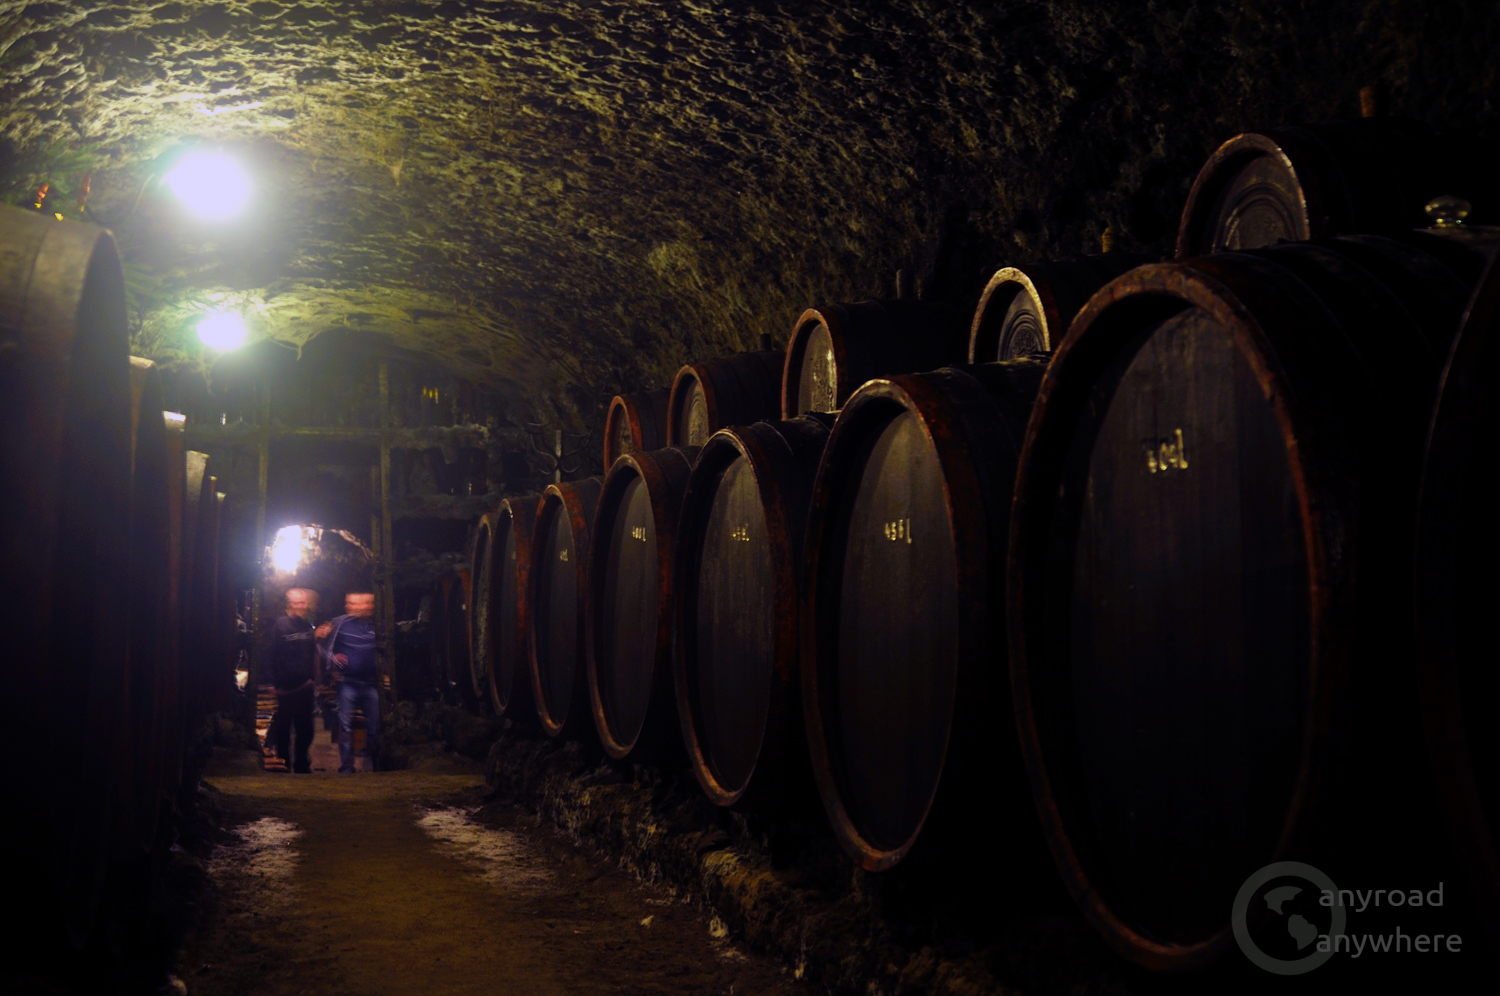 The barrels used in Tokaj wine region are made from local oak wood to add their flavour to the wine